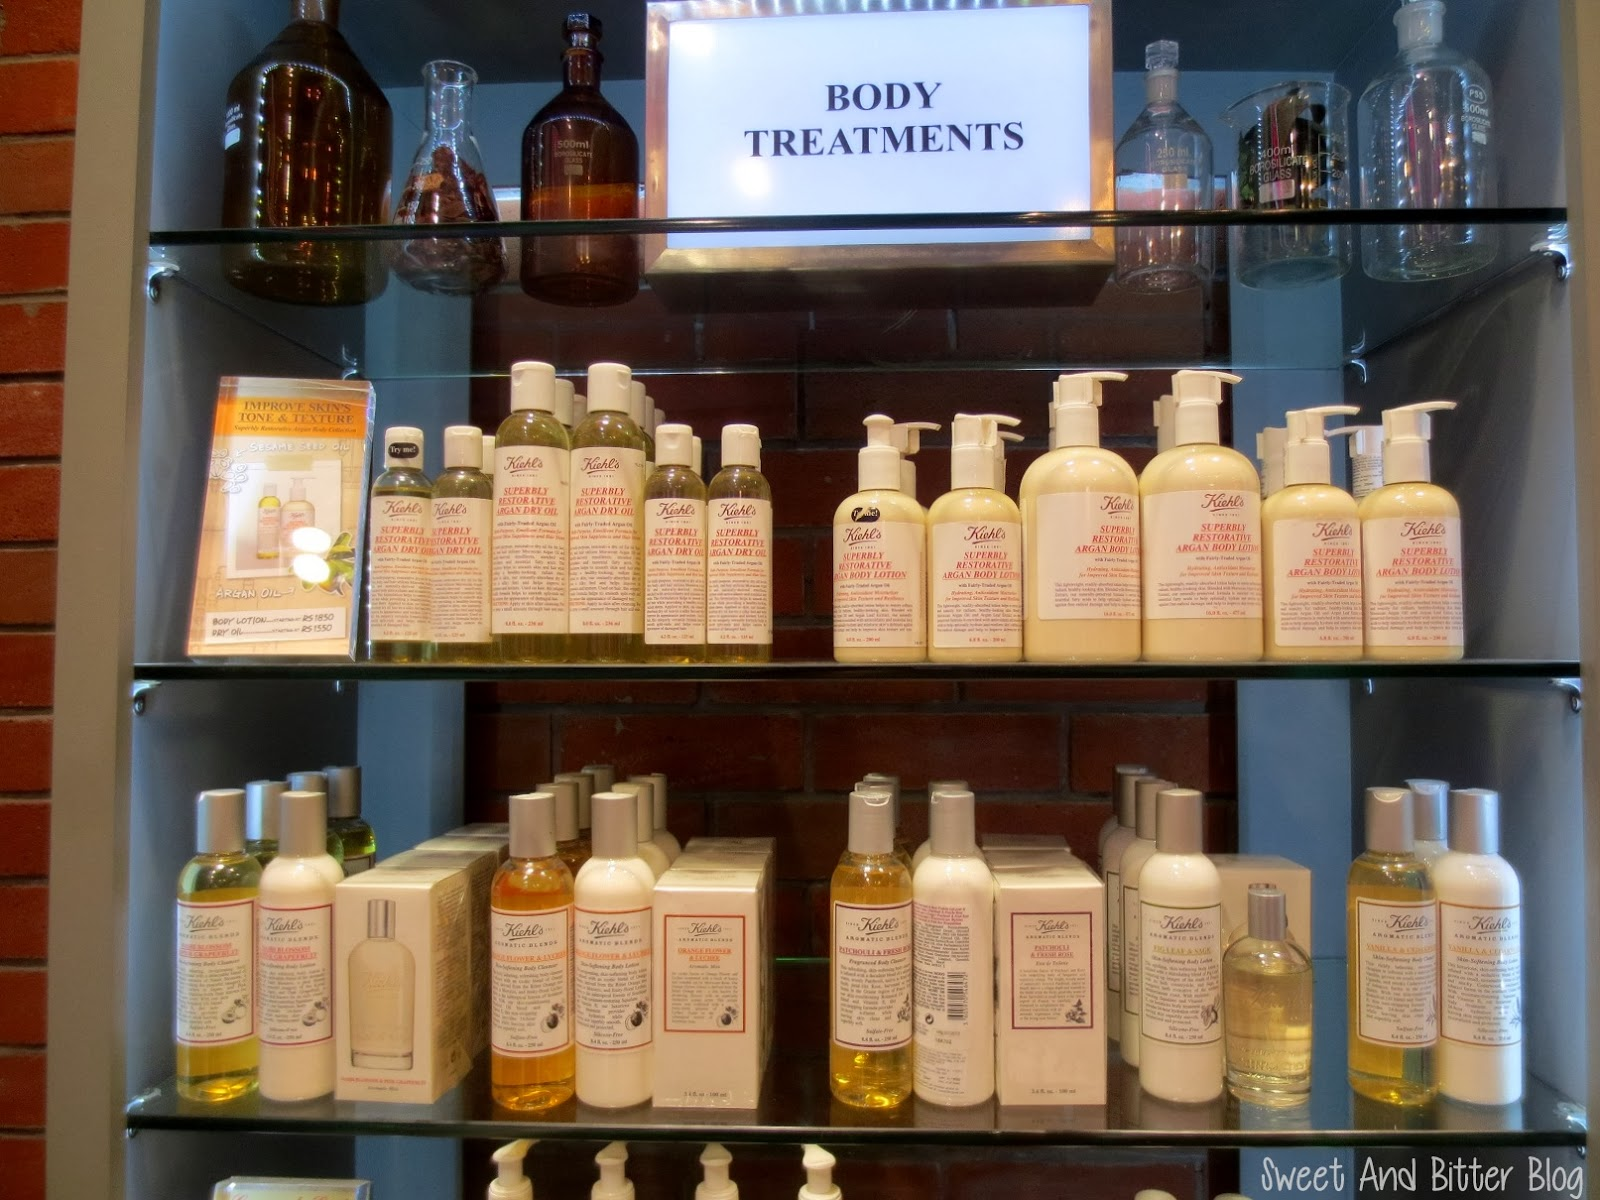 Kiehl's Body Treatments